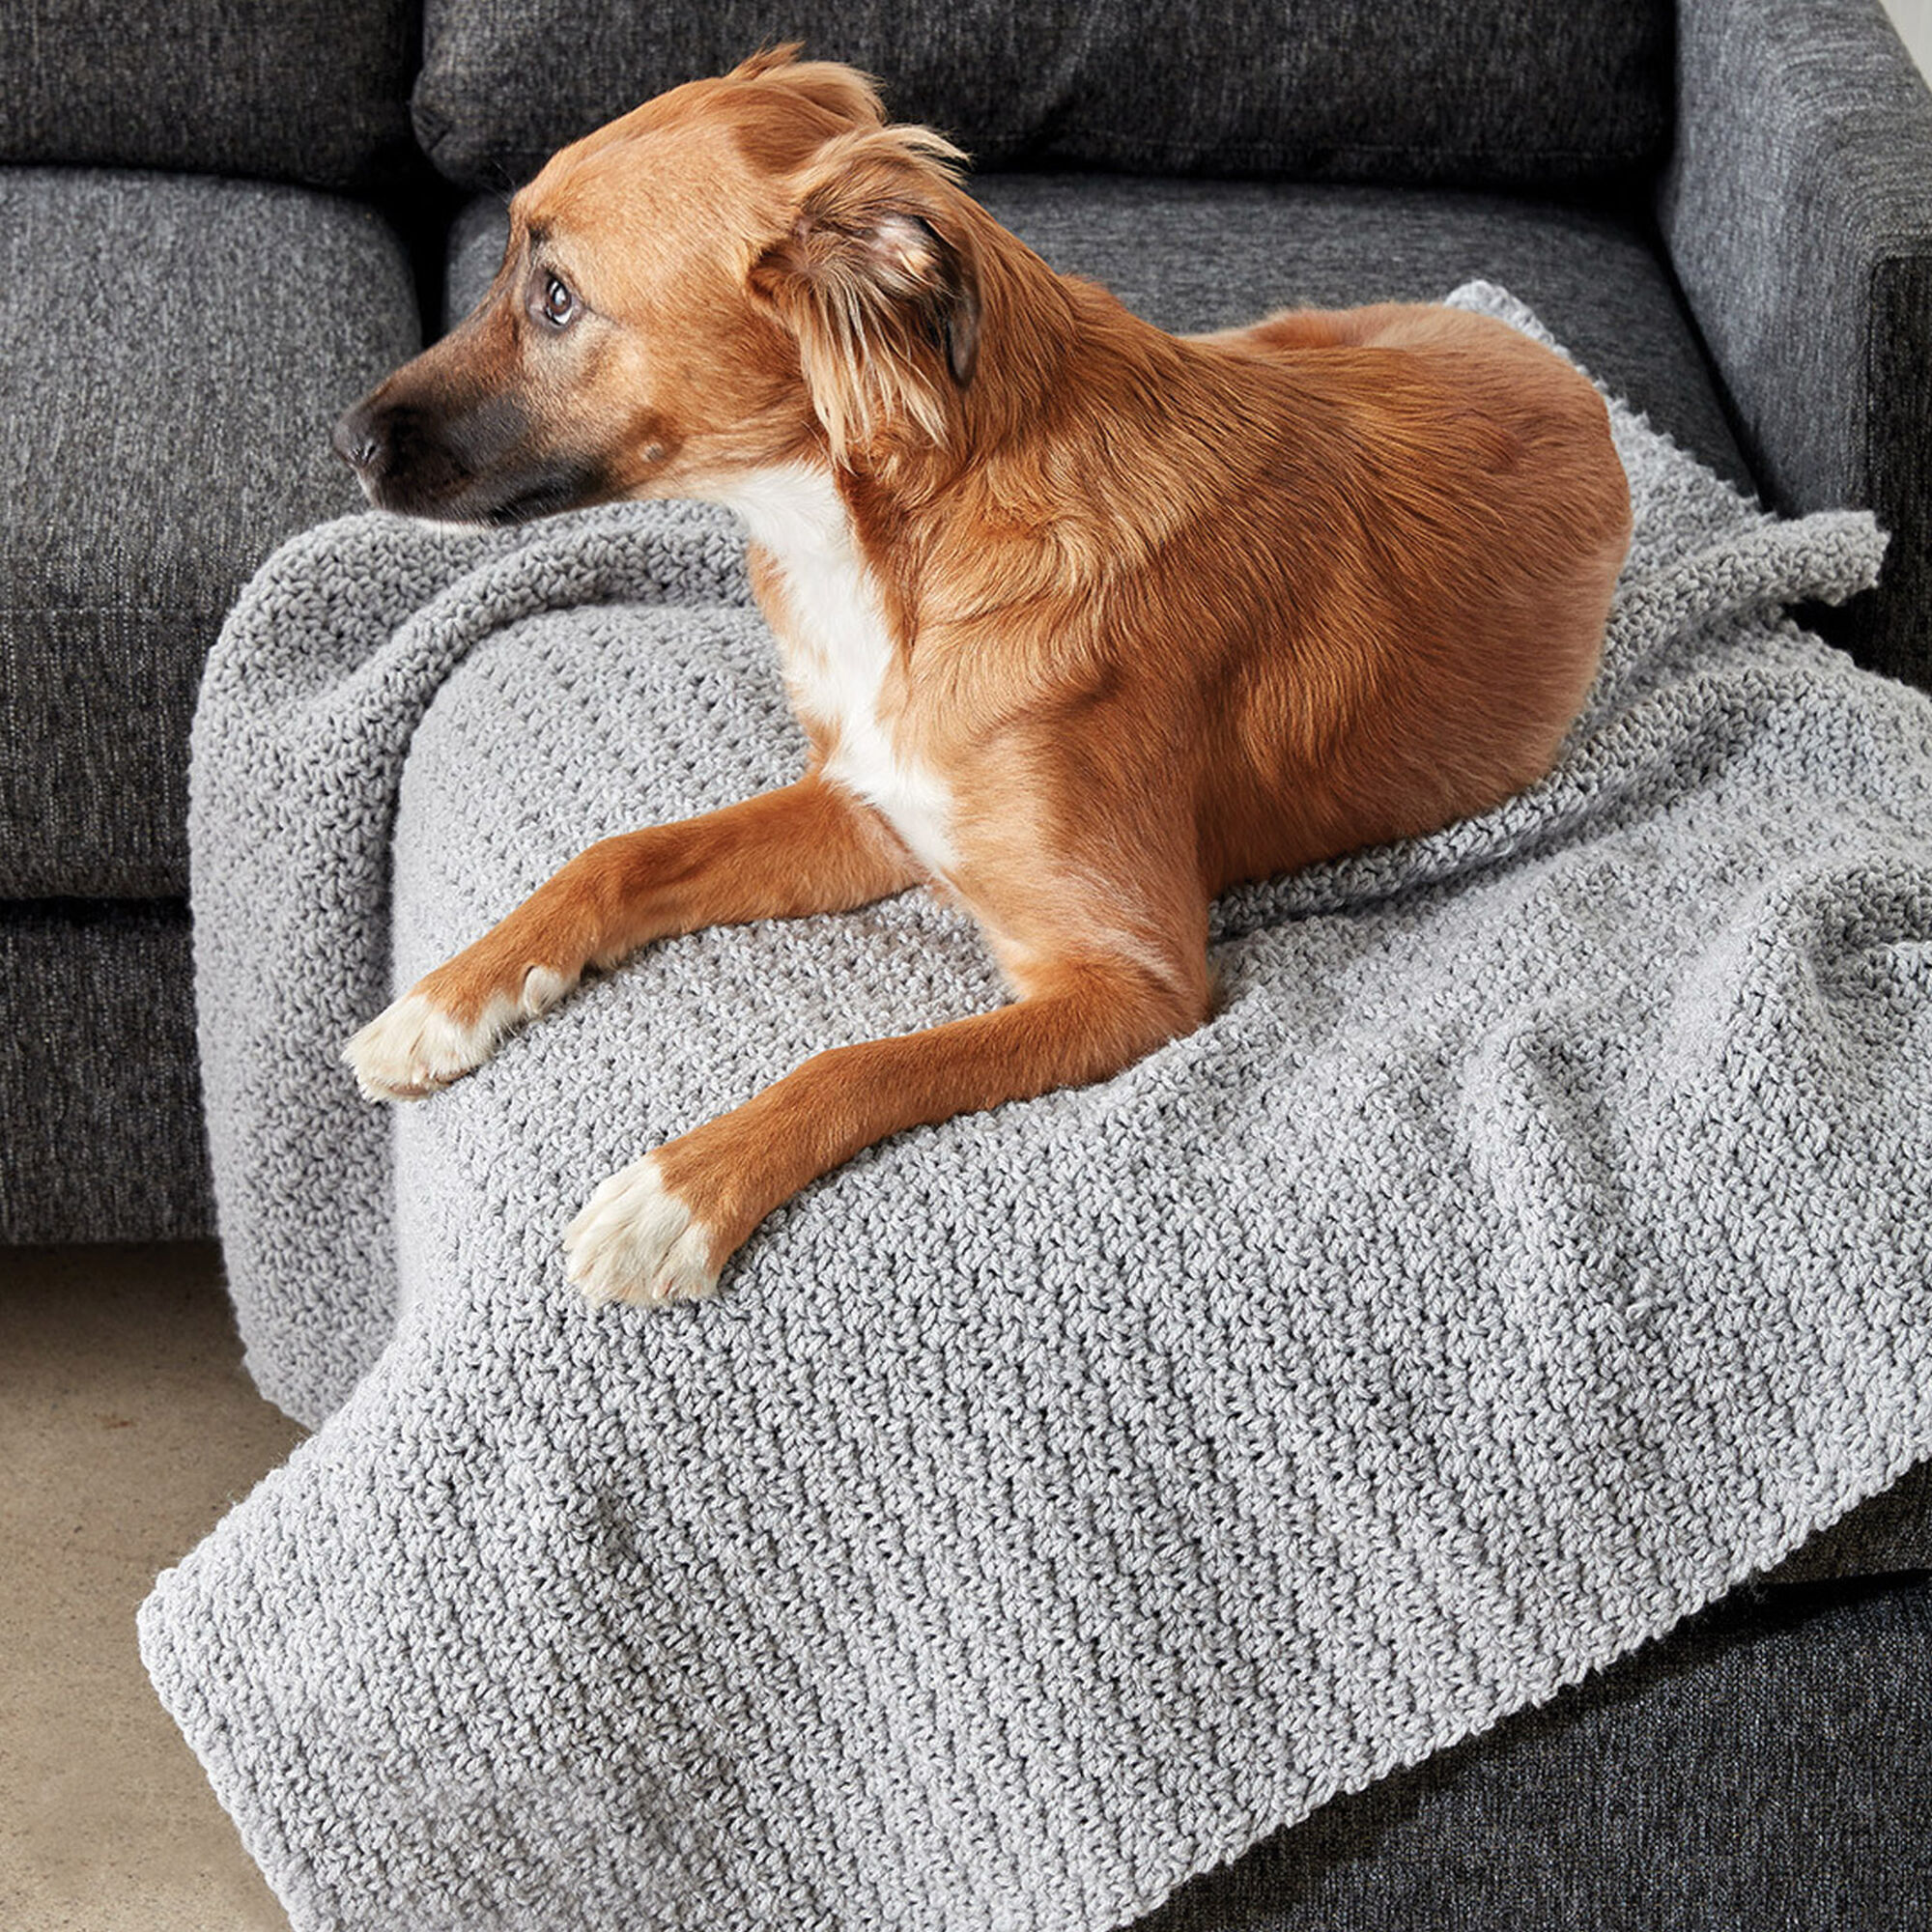 Caron Crochet Snuggle Pet Blanket, Dog | Yarnspirations